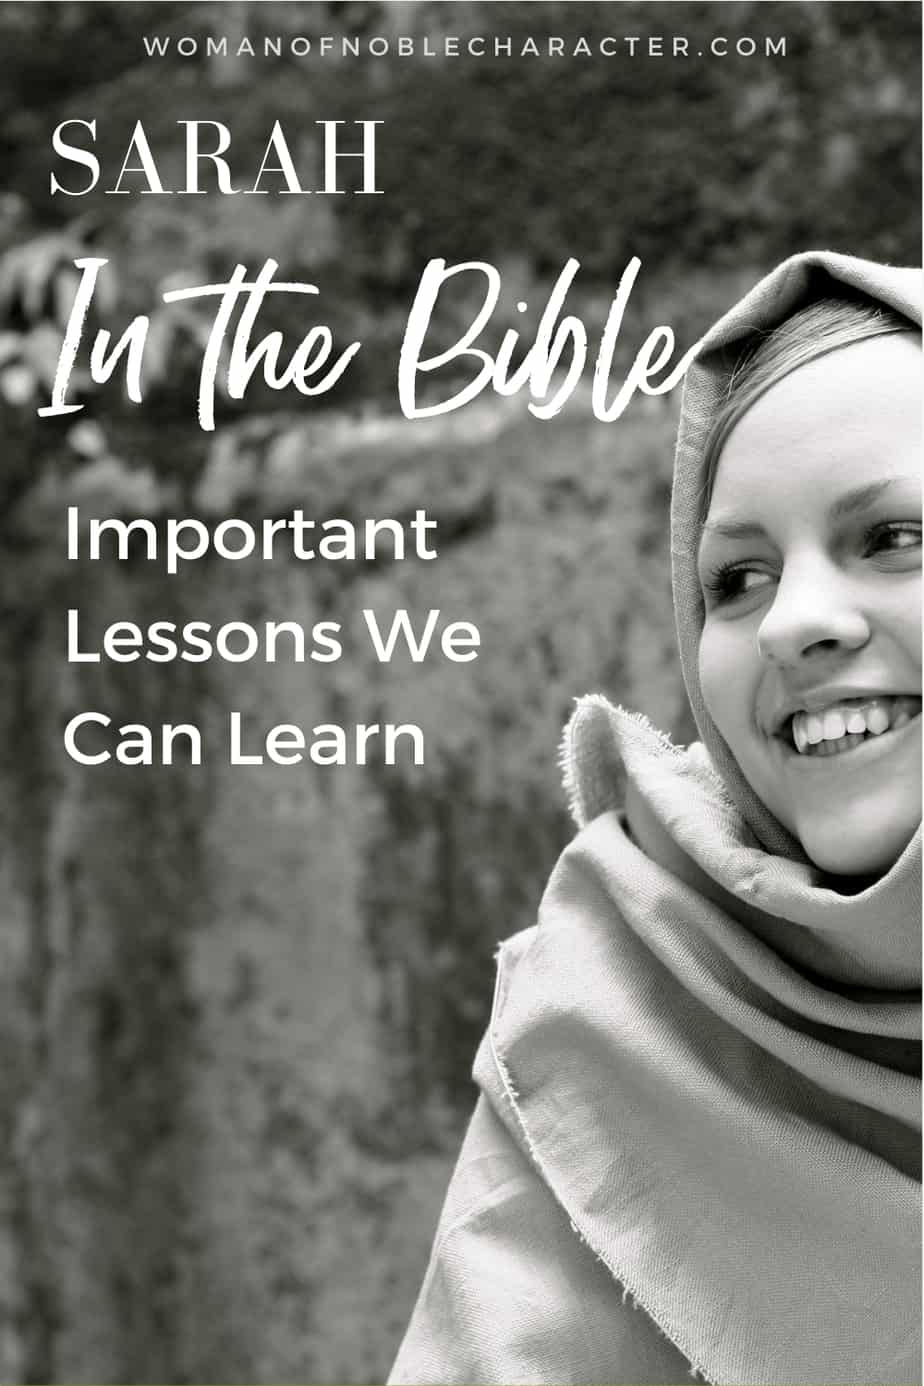 image in black and white of biblical woman with headcovering for the post 8 Purposeful Lessons We Can Learn From Sarah In The Bible